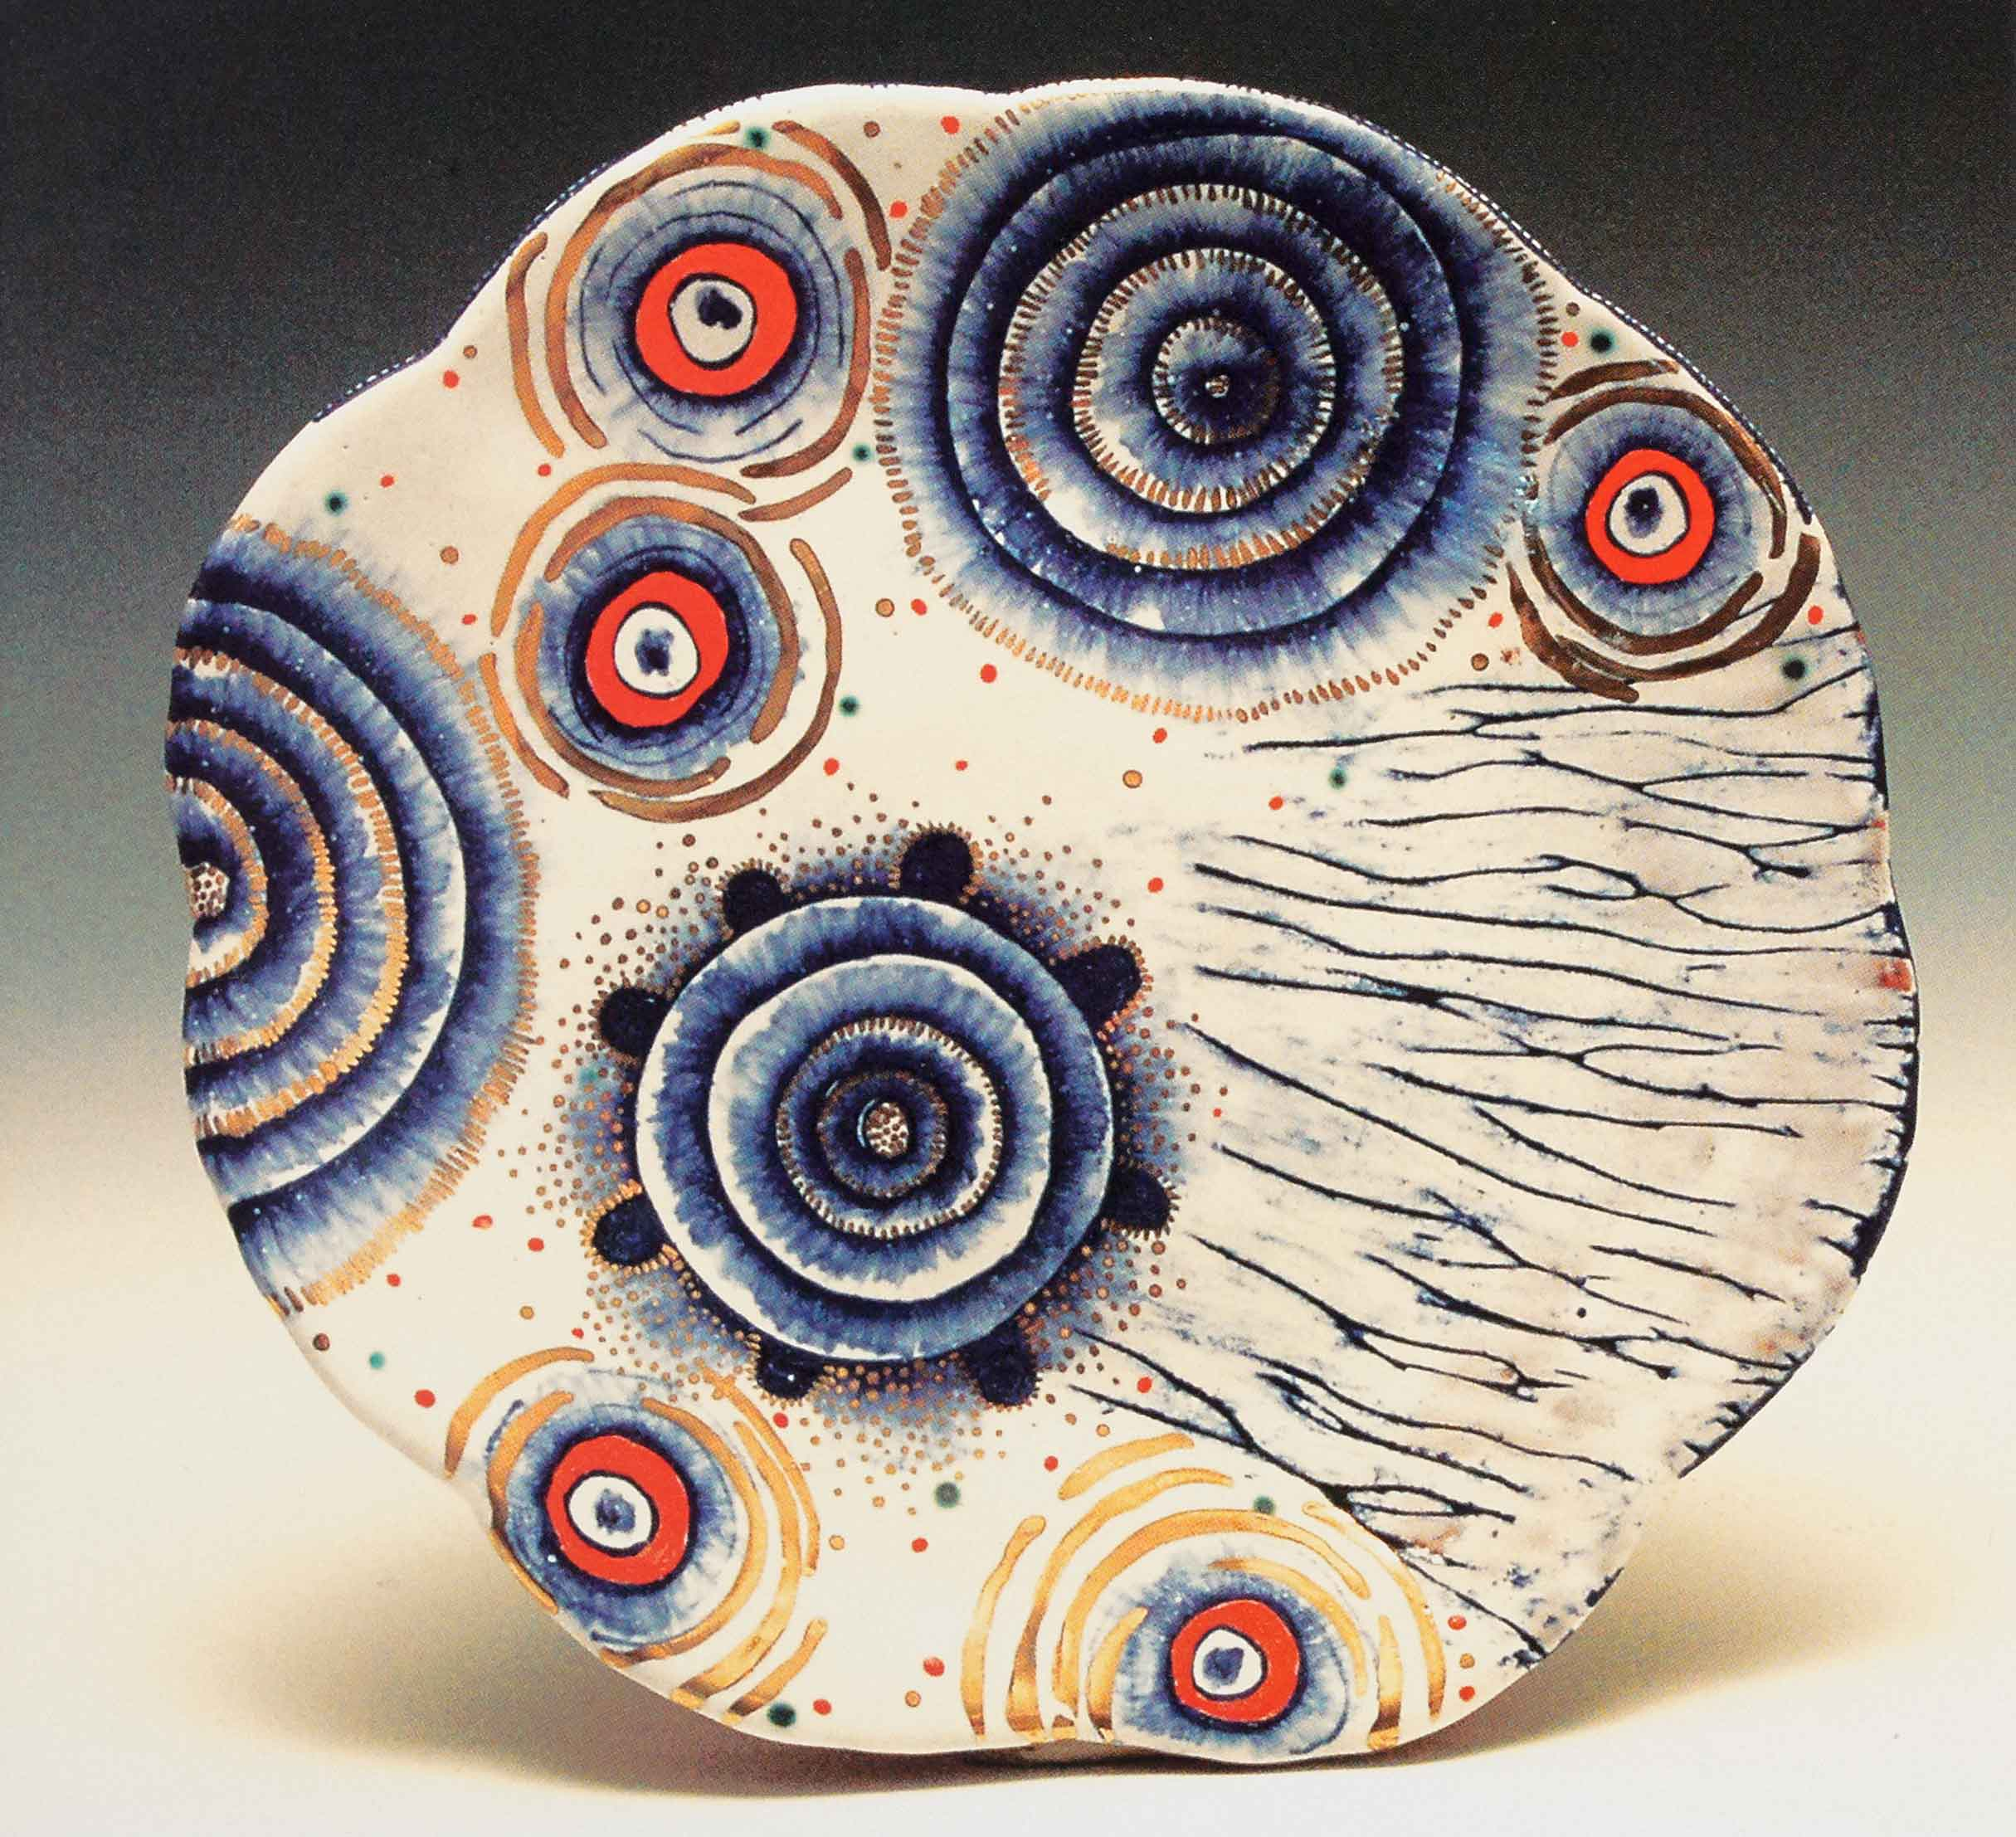 Static Lunch Plate, 2007. Terracotta, maiolica, luster, glass enamels.